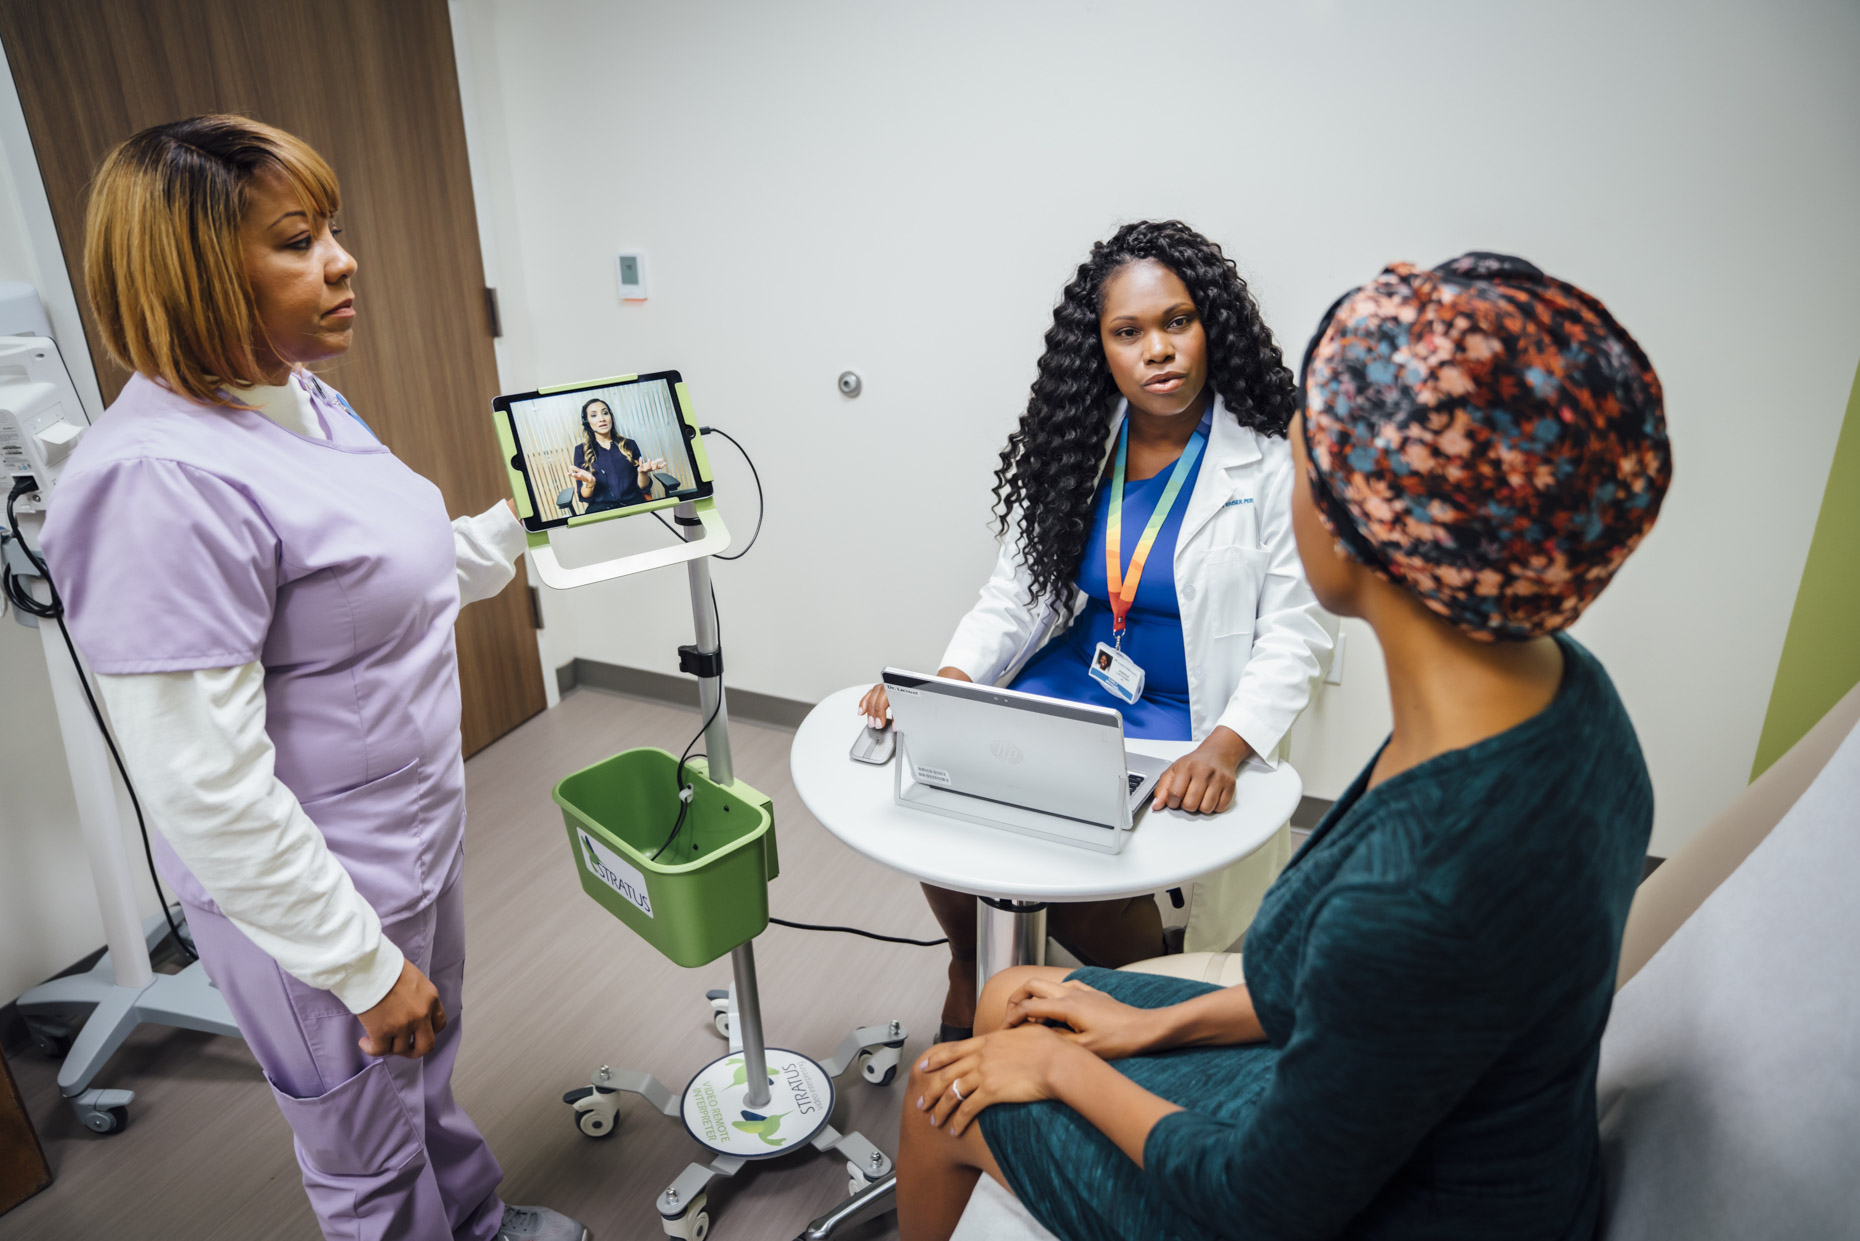 Doctor and nurse talking with patient using remote translator